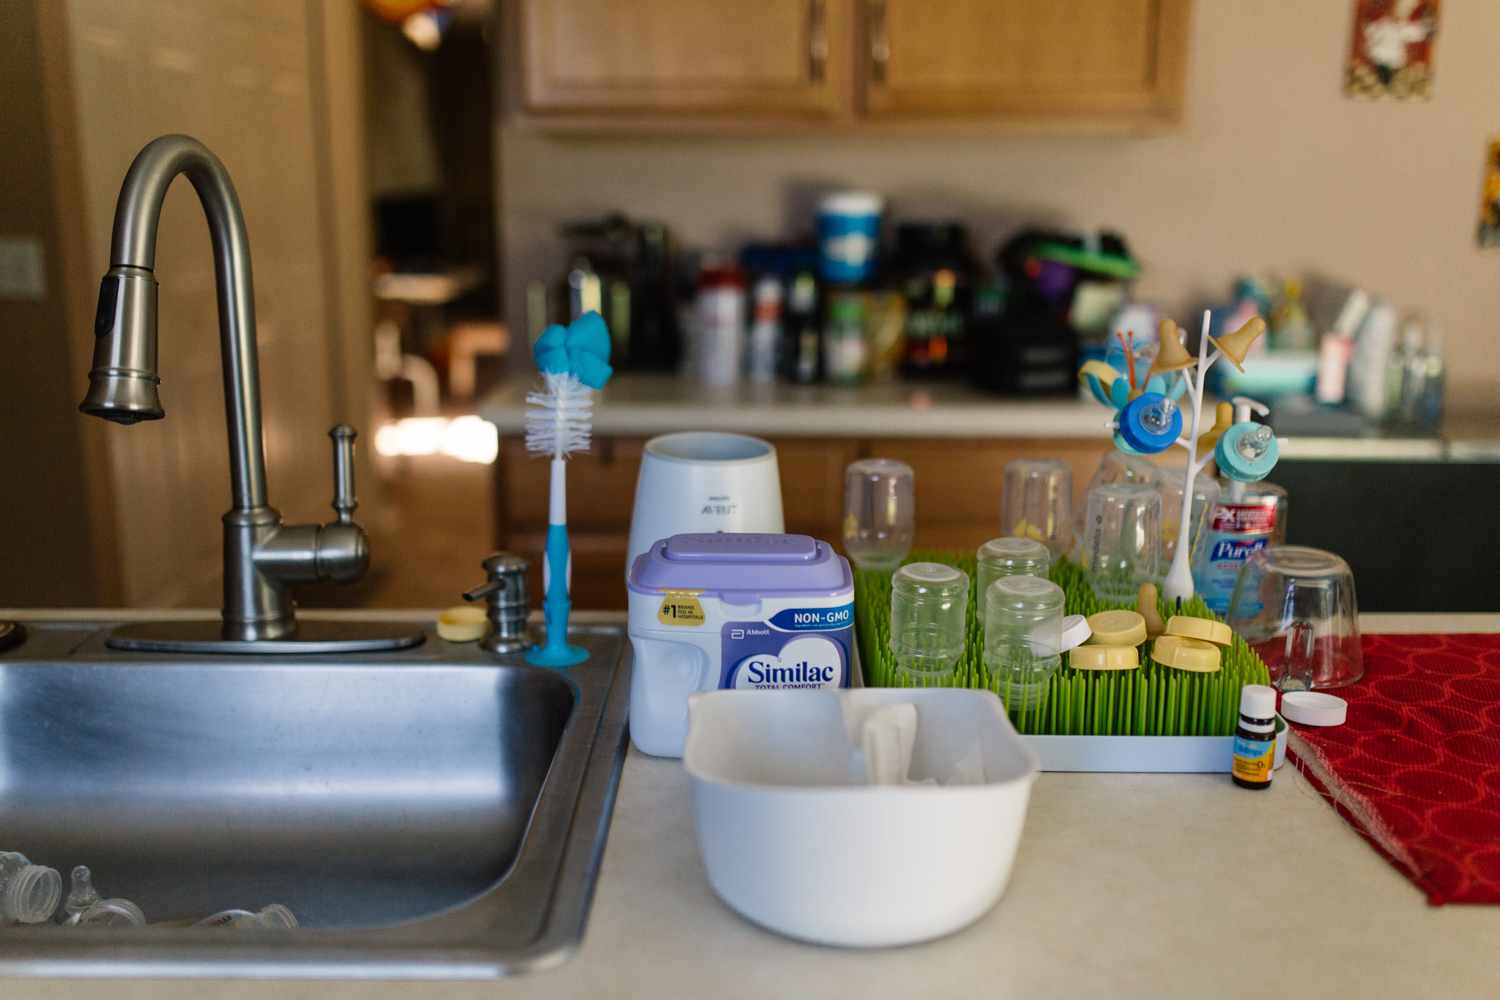 Kitchen Counter with Baby Bottles Documentary Family Photograher Orlando.jpg